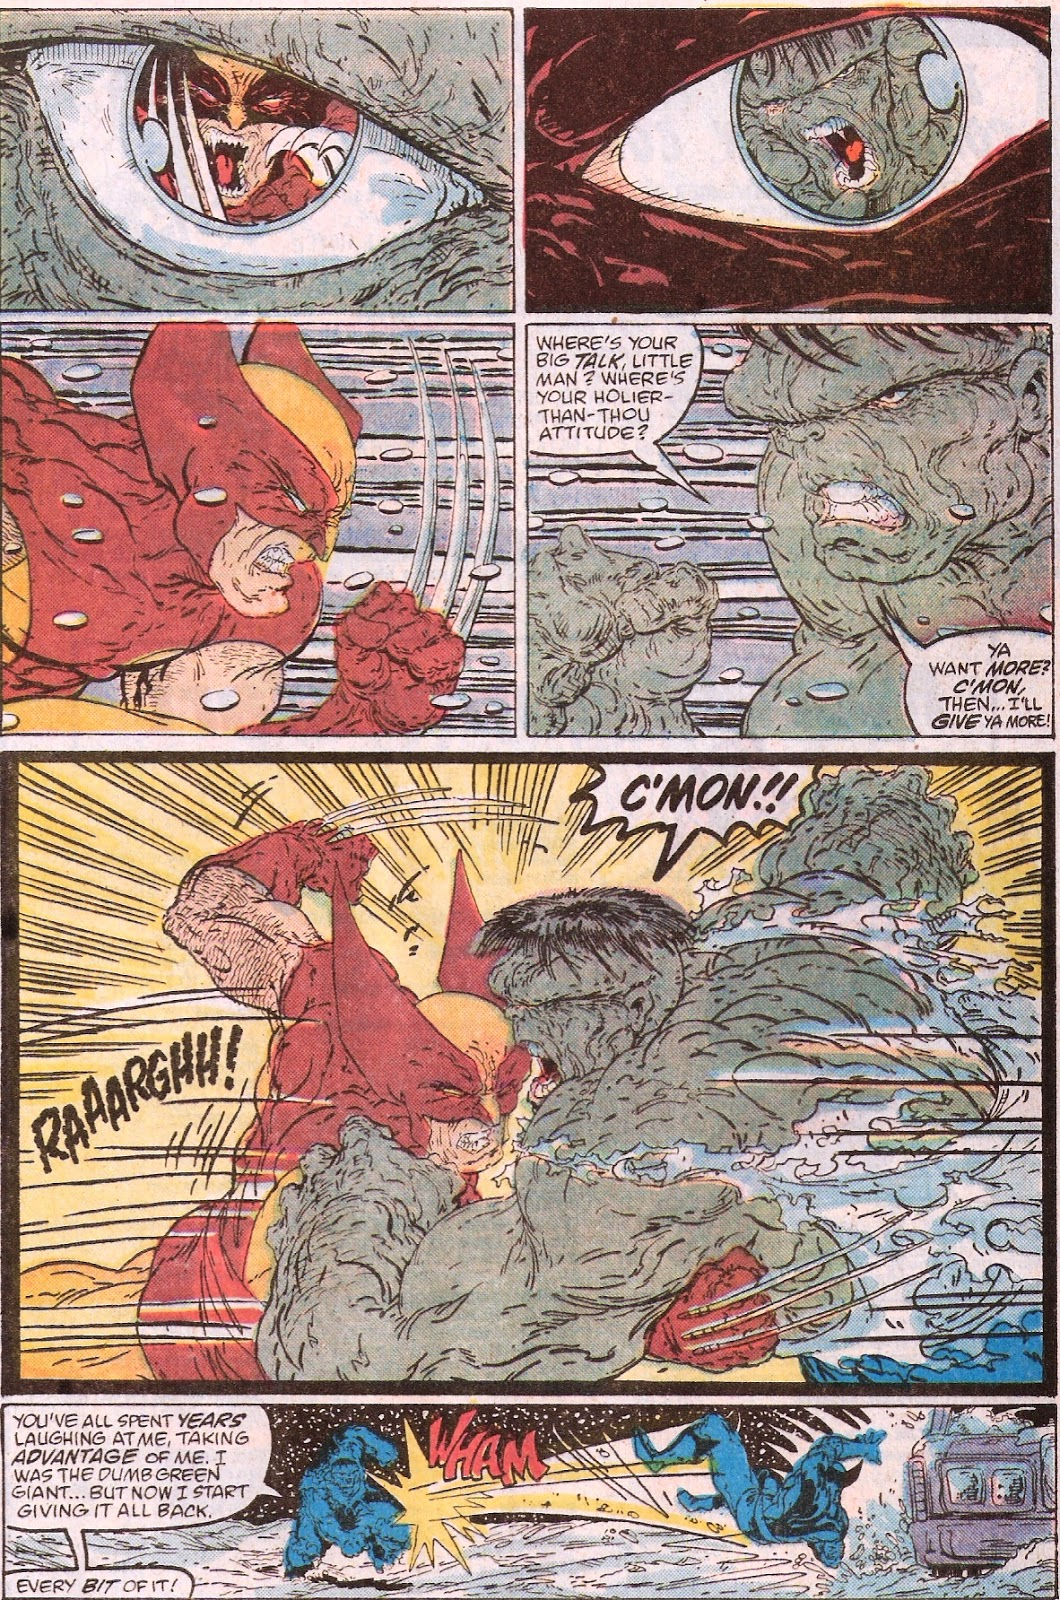 Bronze age babies july 2014 doug the hulk launches himself at wolverine but at the last instant logan whirls popping his claws and slashed the hulk across his right arm fandeluxe Choice Image